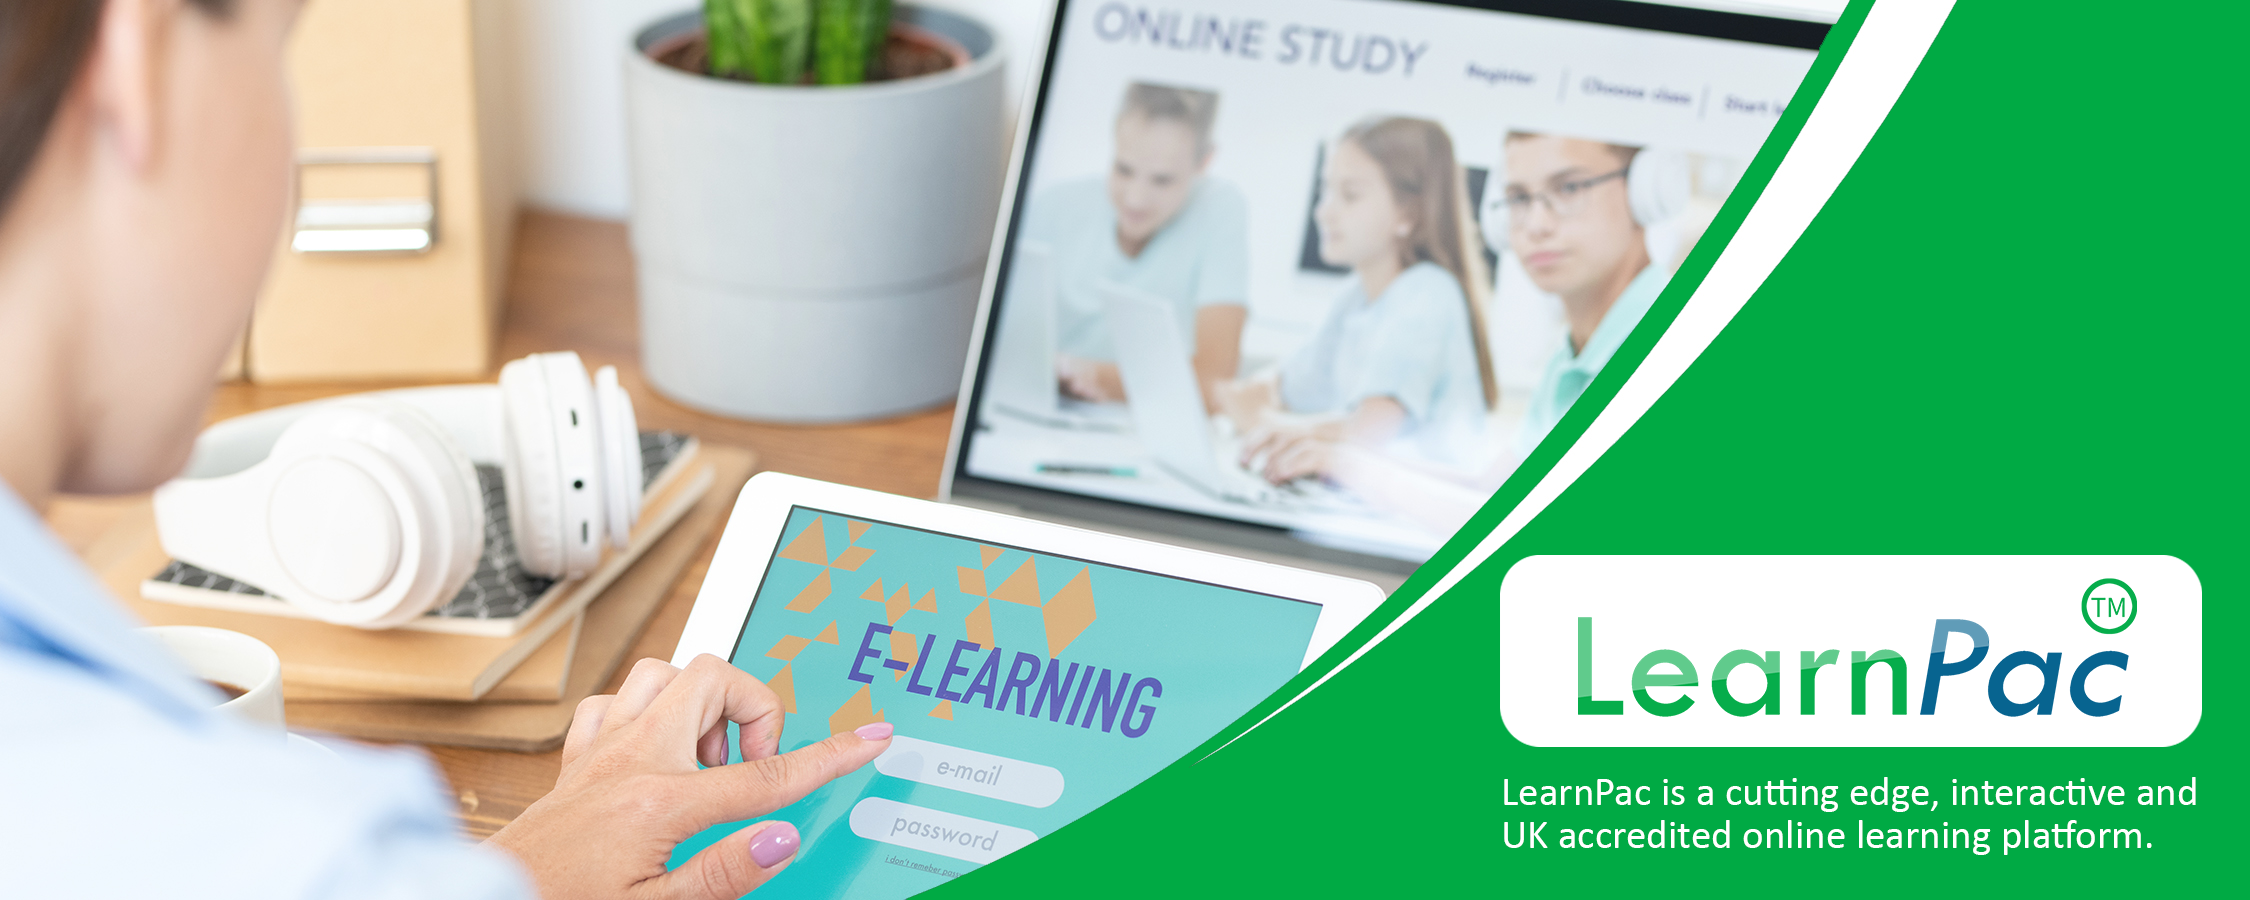 Increasing Your Happiness Training - Online Learning Courses - E-Learning Courses - LearnPac Systems UK -